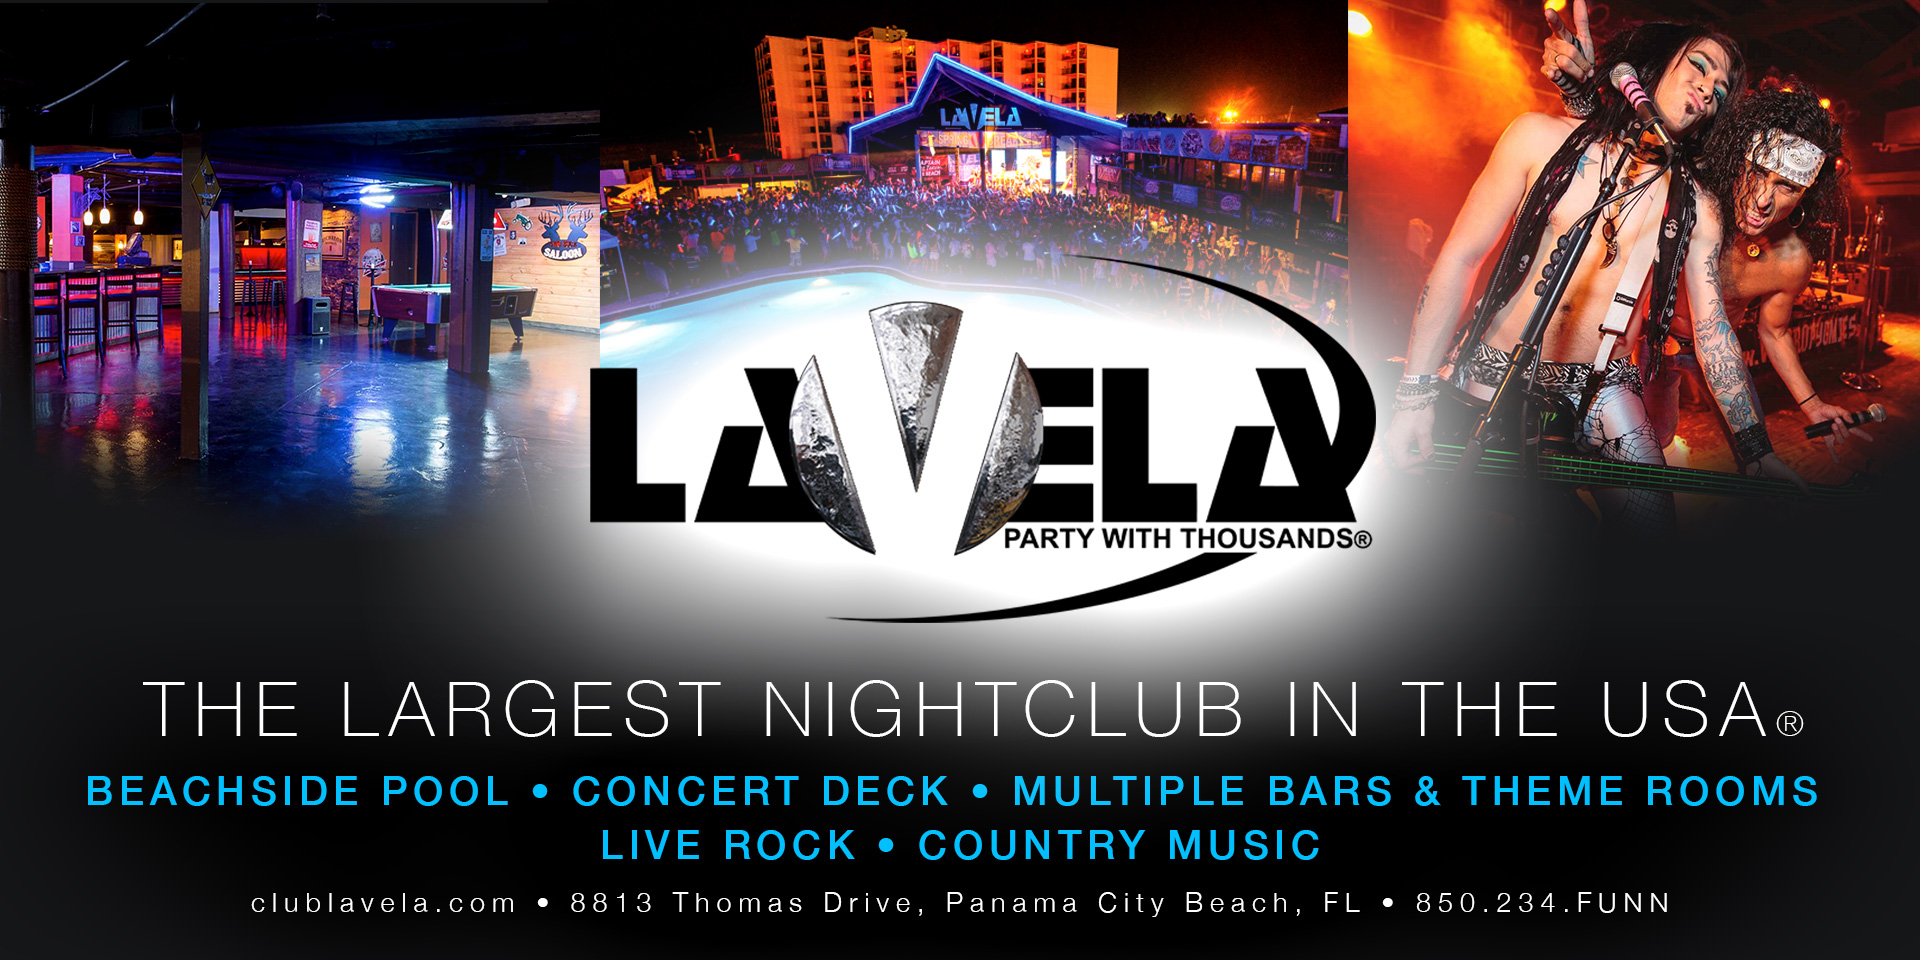 Panama City Beach Motorcycle Rally® Venue | Club La Vela - Party with Thousands! | Spring 2018 Schedule